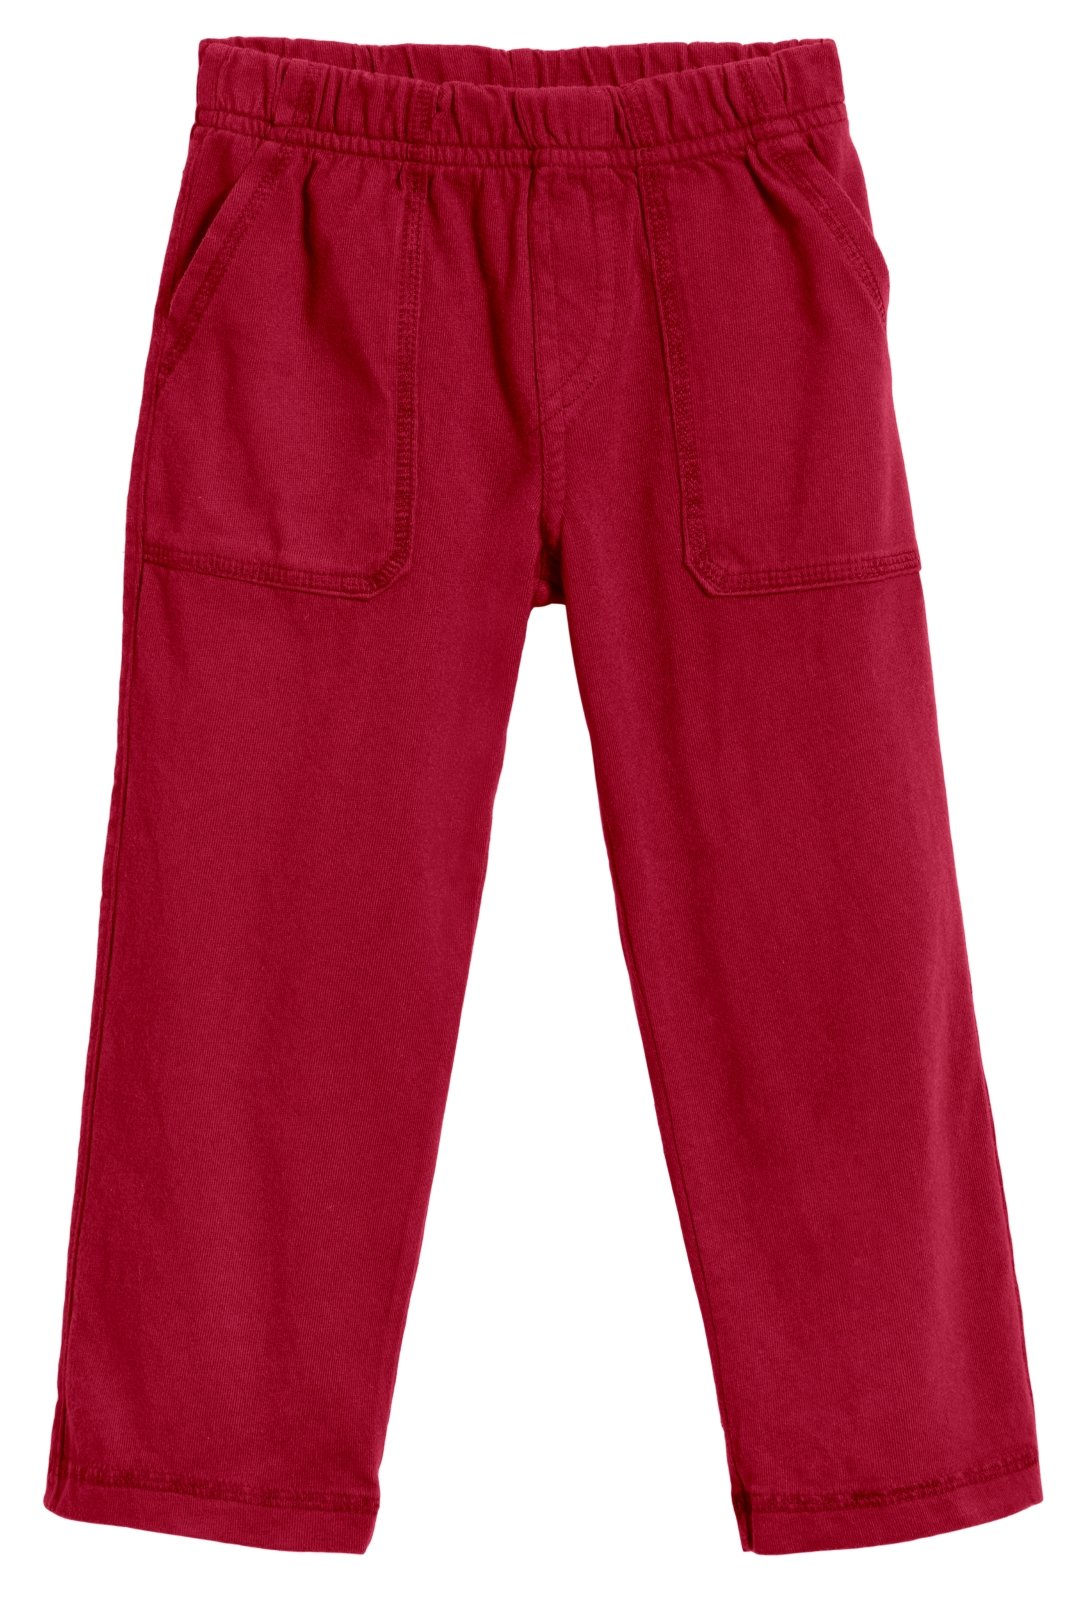 City Threads Little Boys' and Girls' Soft Jersey Tonal Stitch Pant Perfect for Sensitive Skin SPD Sensory Friendly Clothing - Red 4